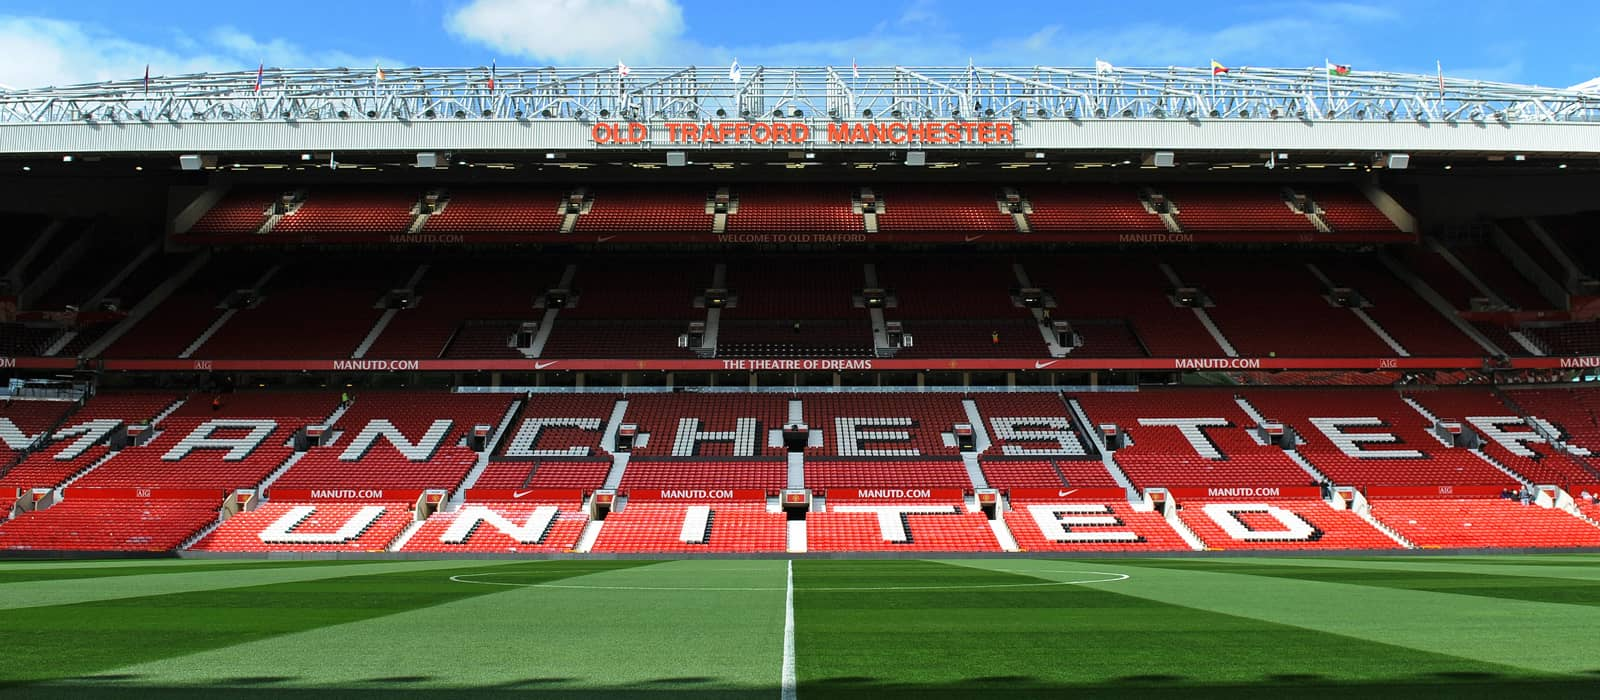 Marcel Bout appointed chief scout at Manchester United